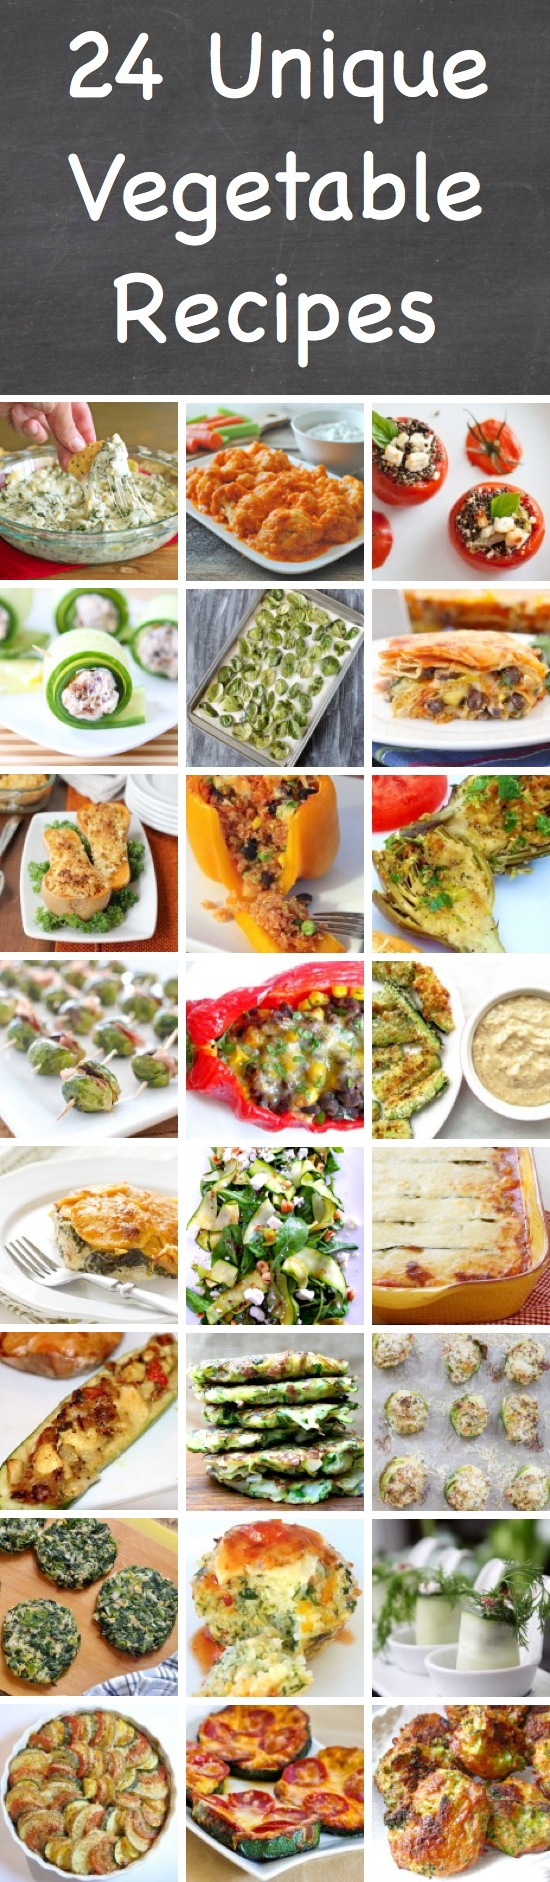 Awesome 24 unique vegetable recipes food drinks pinterest 24 unique vegetable recipes forumfinder Image collections